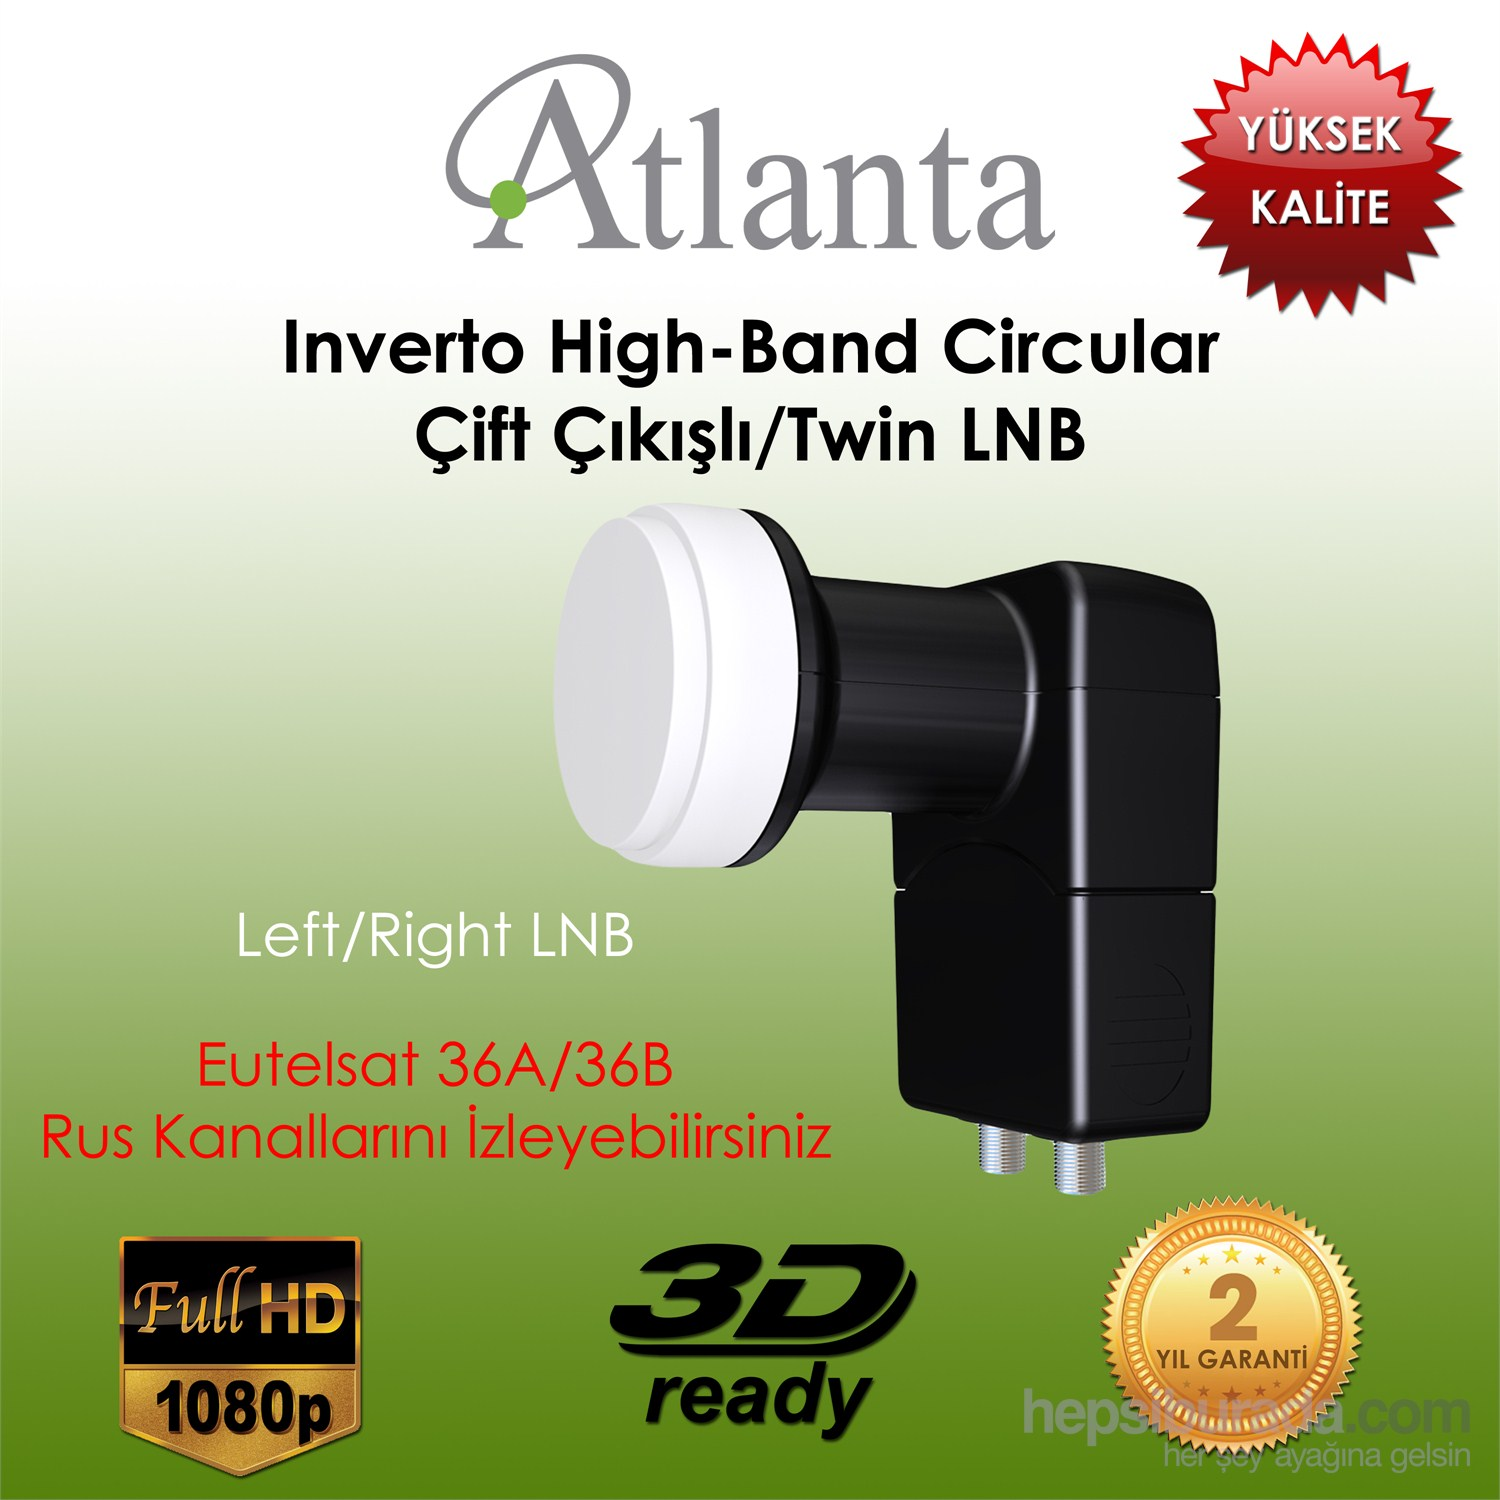 Atlanta Inverto High-Band Circular Twin Lnb (Çift çıkışlı)